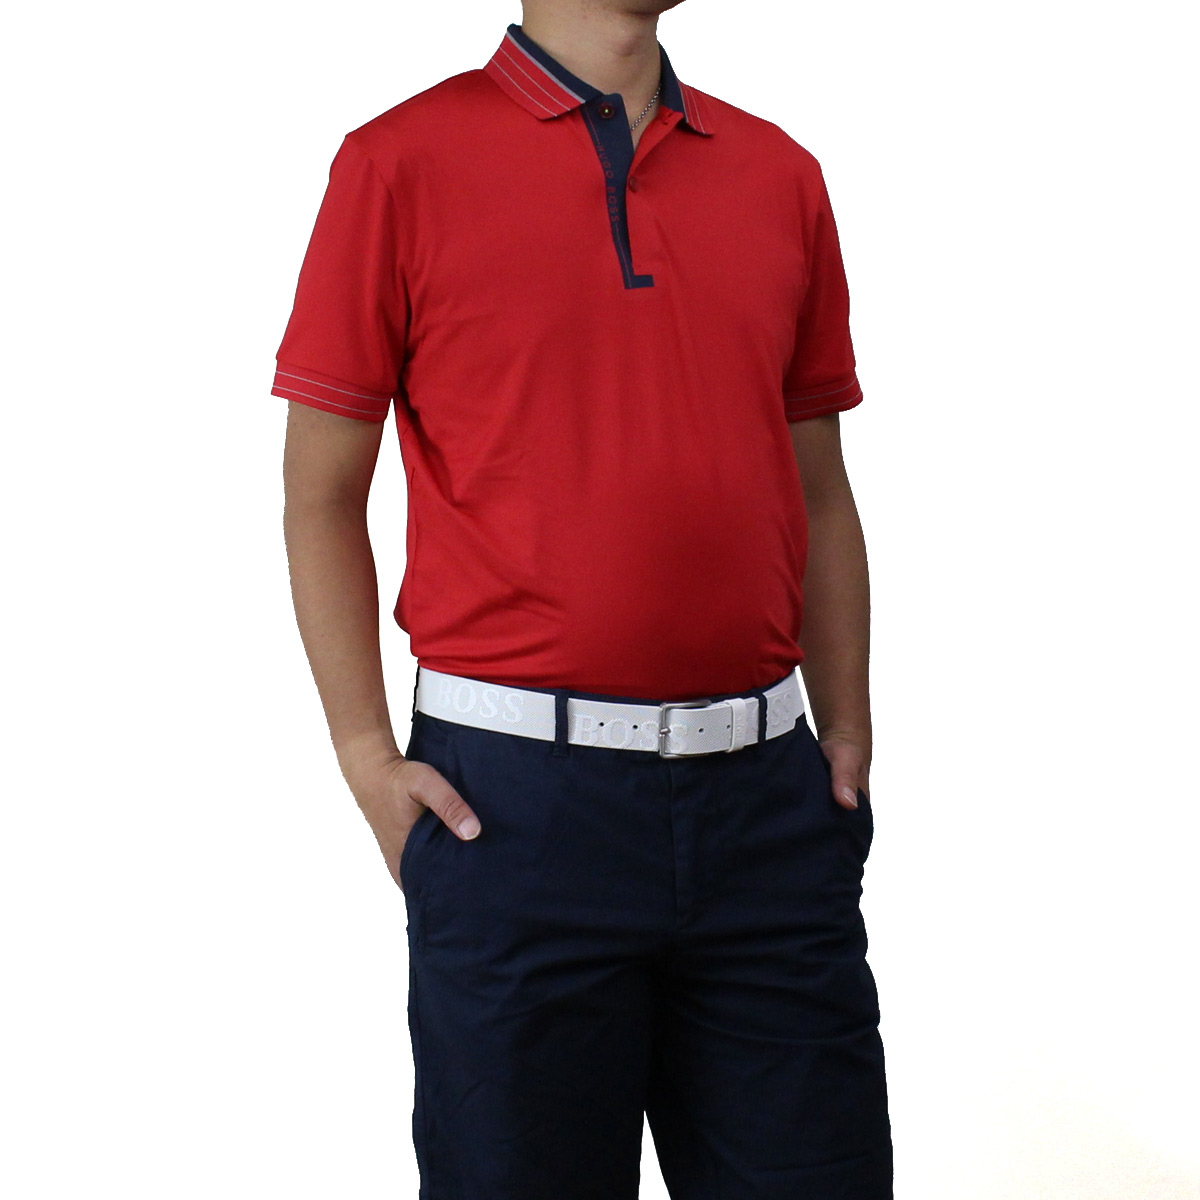 4f845306e Bighit The total brand wholesale: Hugo Boss HUGO BOSS PADDY PRO 1  パディプロポロシャツ short sleeves golf wear 50403515 10208323 622 red system men ...